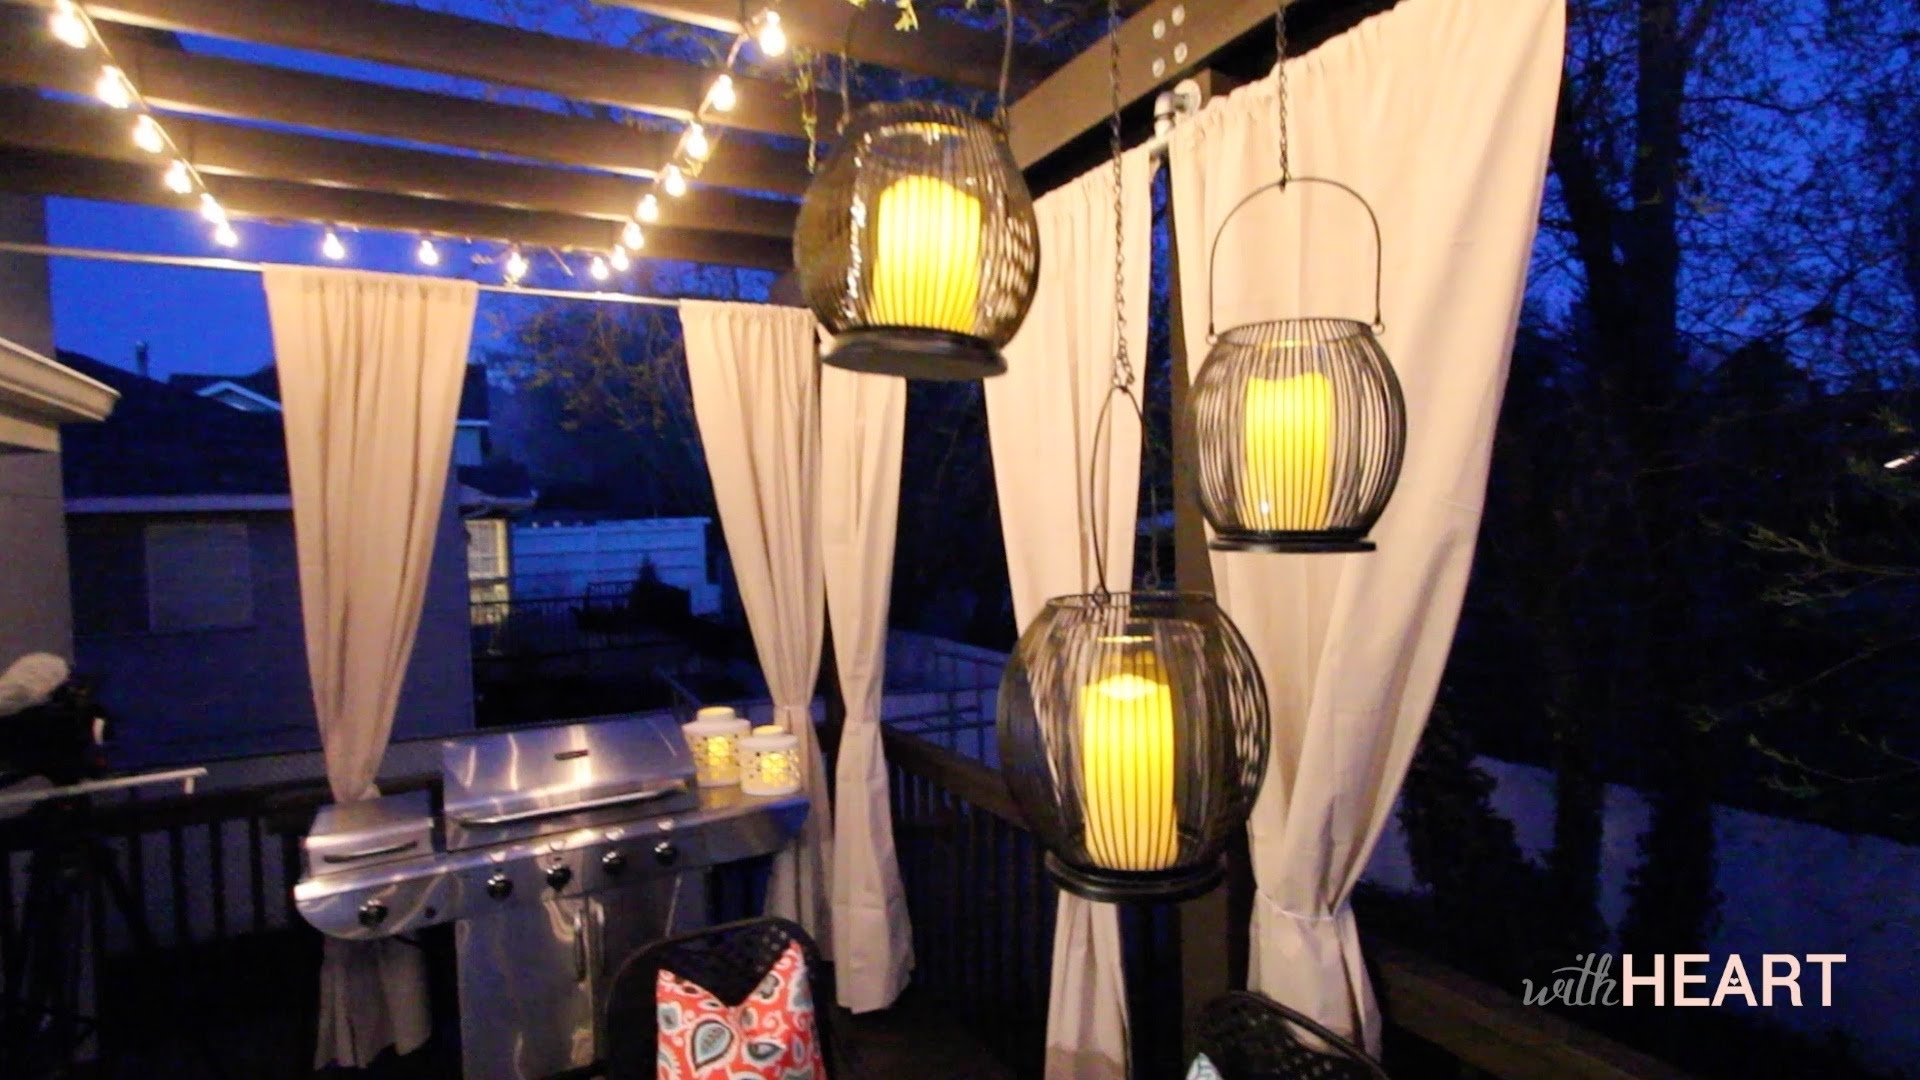 Outdoor String Lights And Hanging Lanterns Withheart Youtube Pertaining To Outdoor Hanging Lanterns For Patio (View 8 of 15)